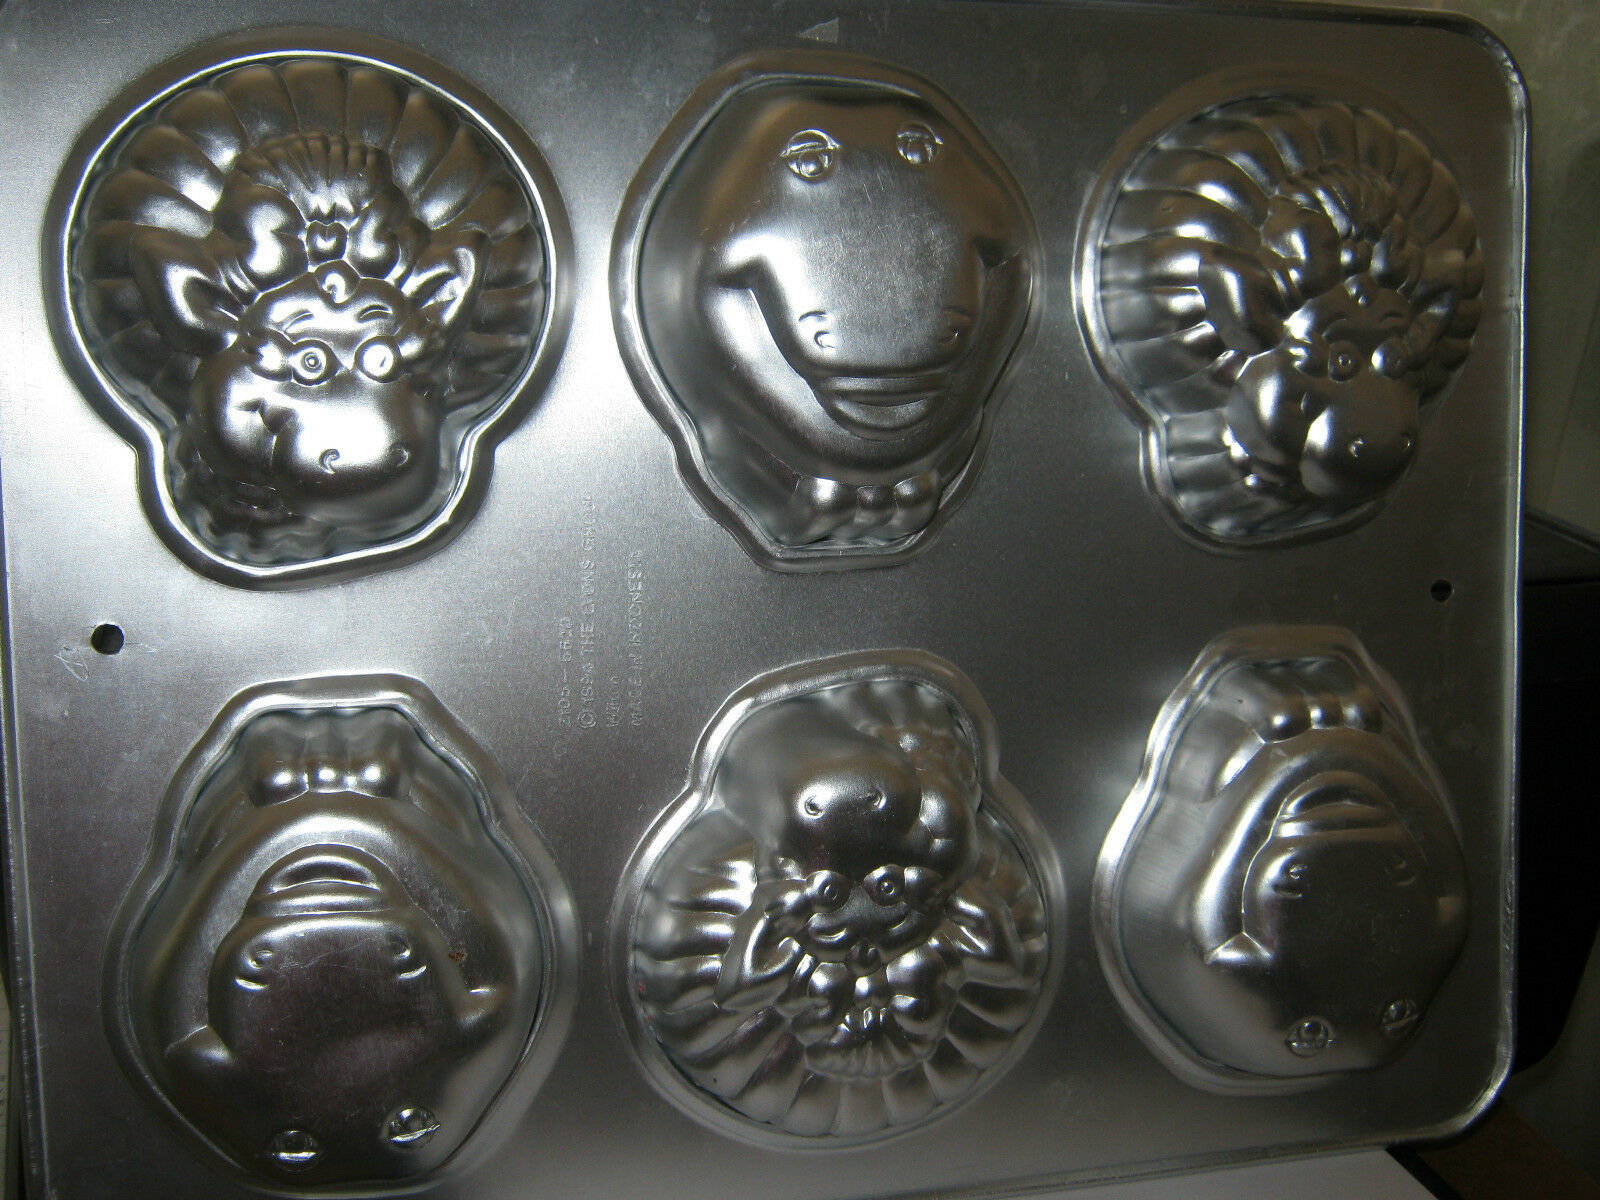 Primary image for Wilton Barney Baby Bop Mini Cupcake Pan 2105-6620